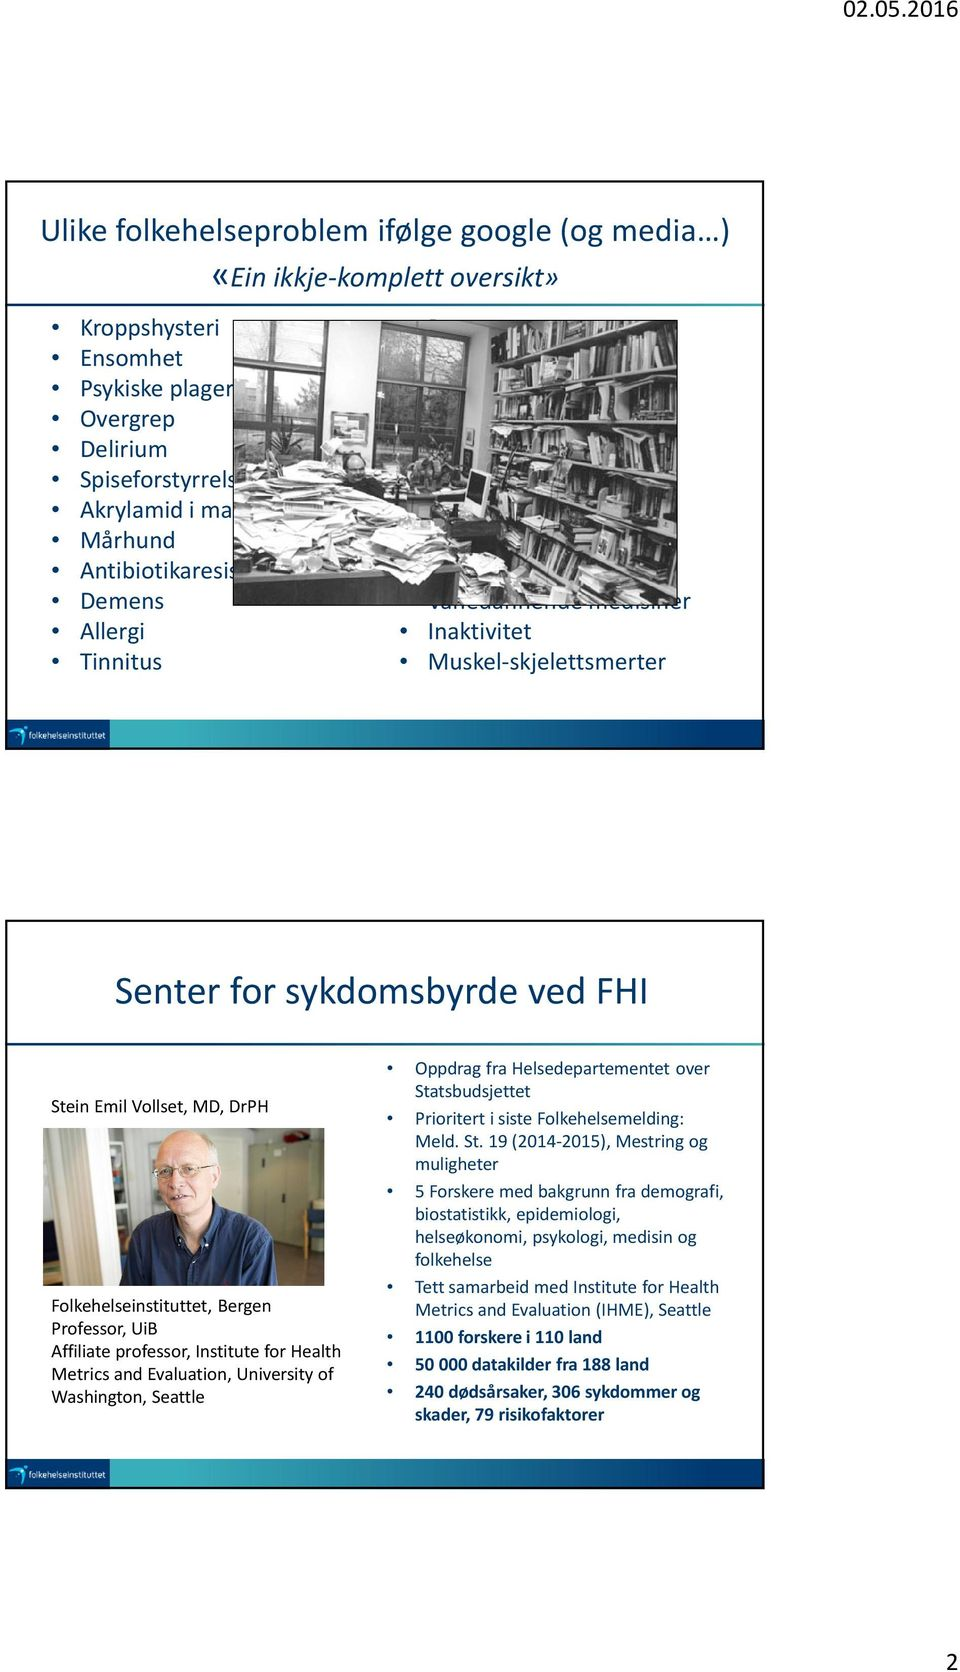 sykdomsbyrde ved FHI Stein Emil Vollset, MD, DrPH Folkehelseinstituttet, Bergen Professor, UiB Affiliateprofessor, Institute for Health Metrics and Evaluation, University of Washington, Seattle